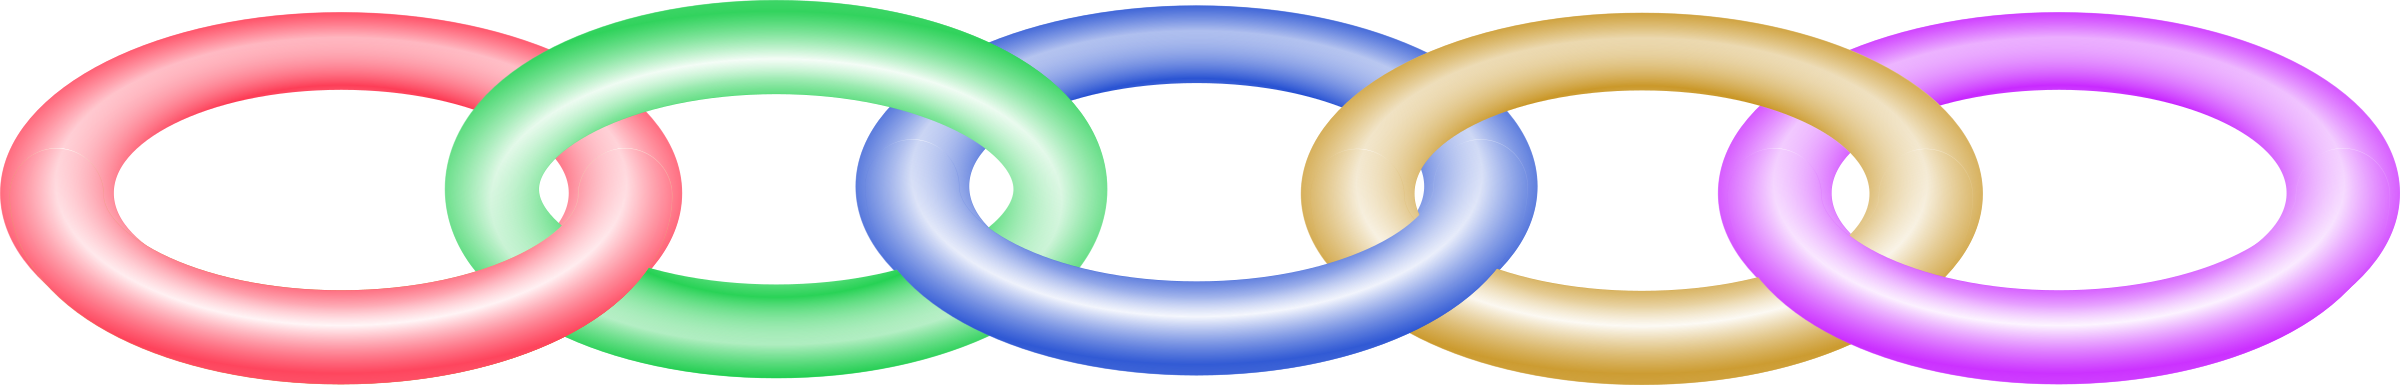 Circle clipart chain link. Muticoloured big image png